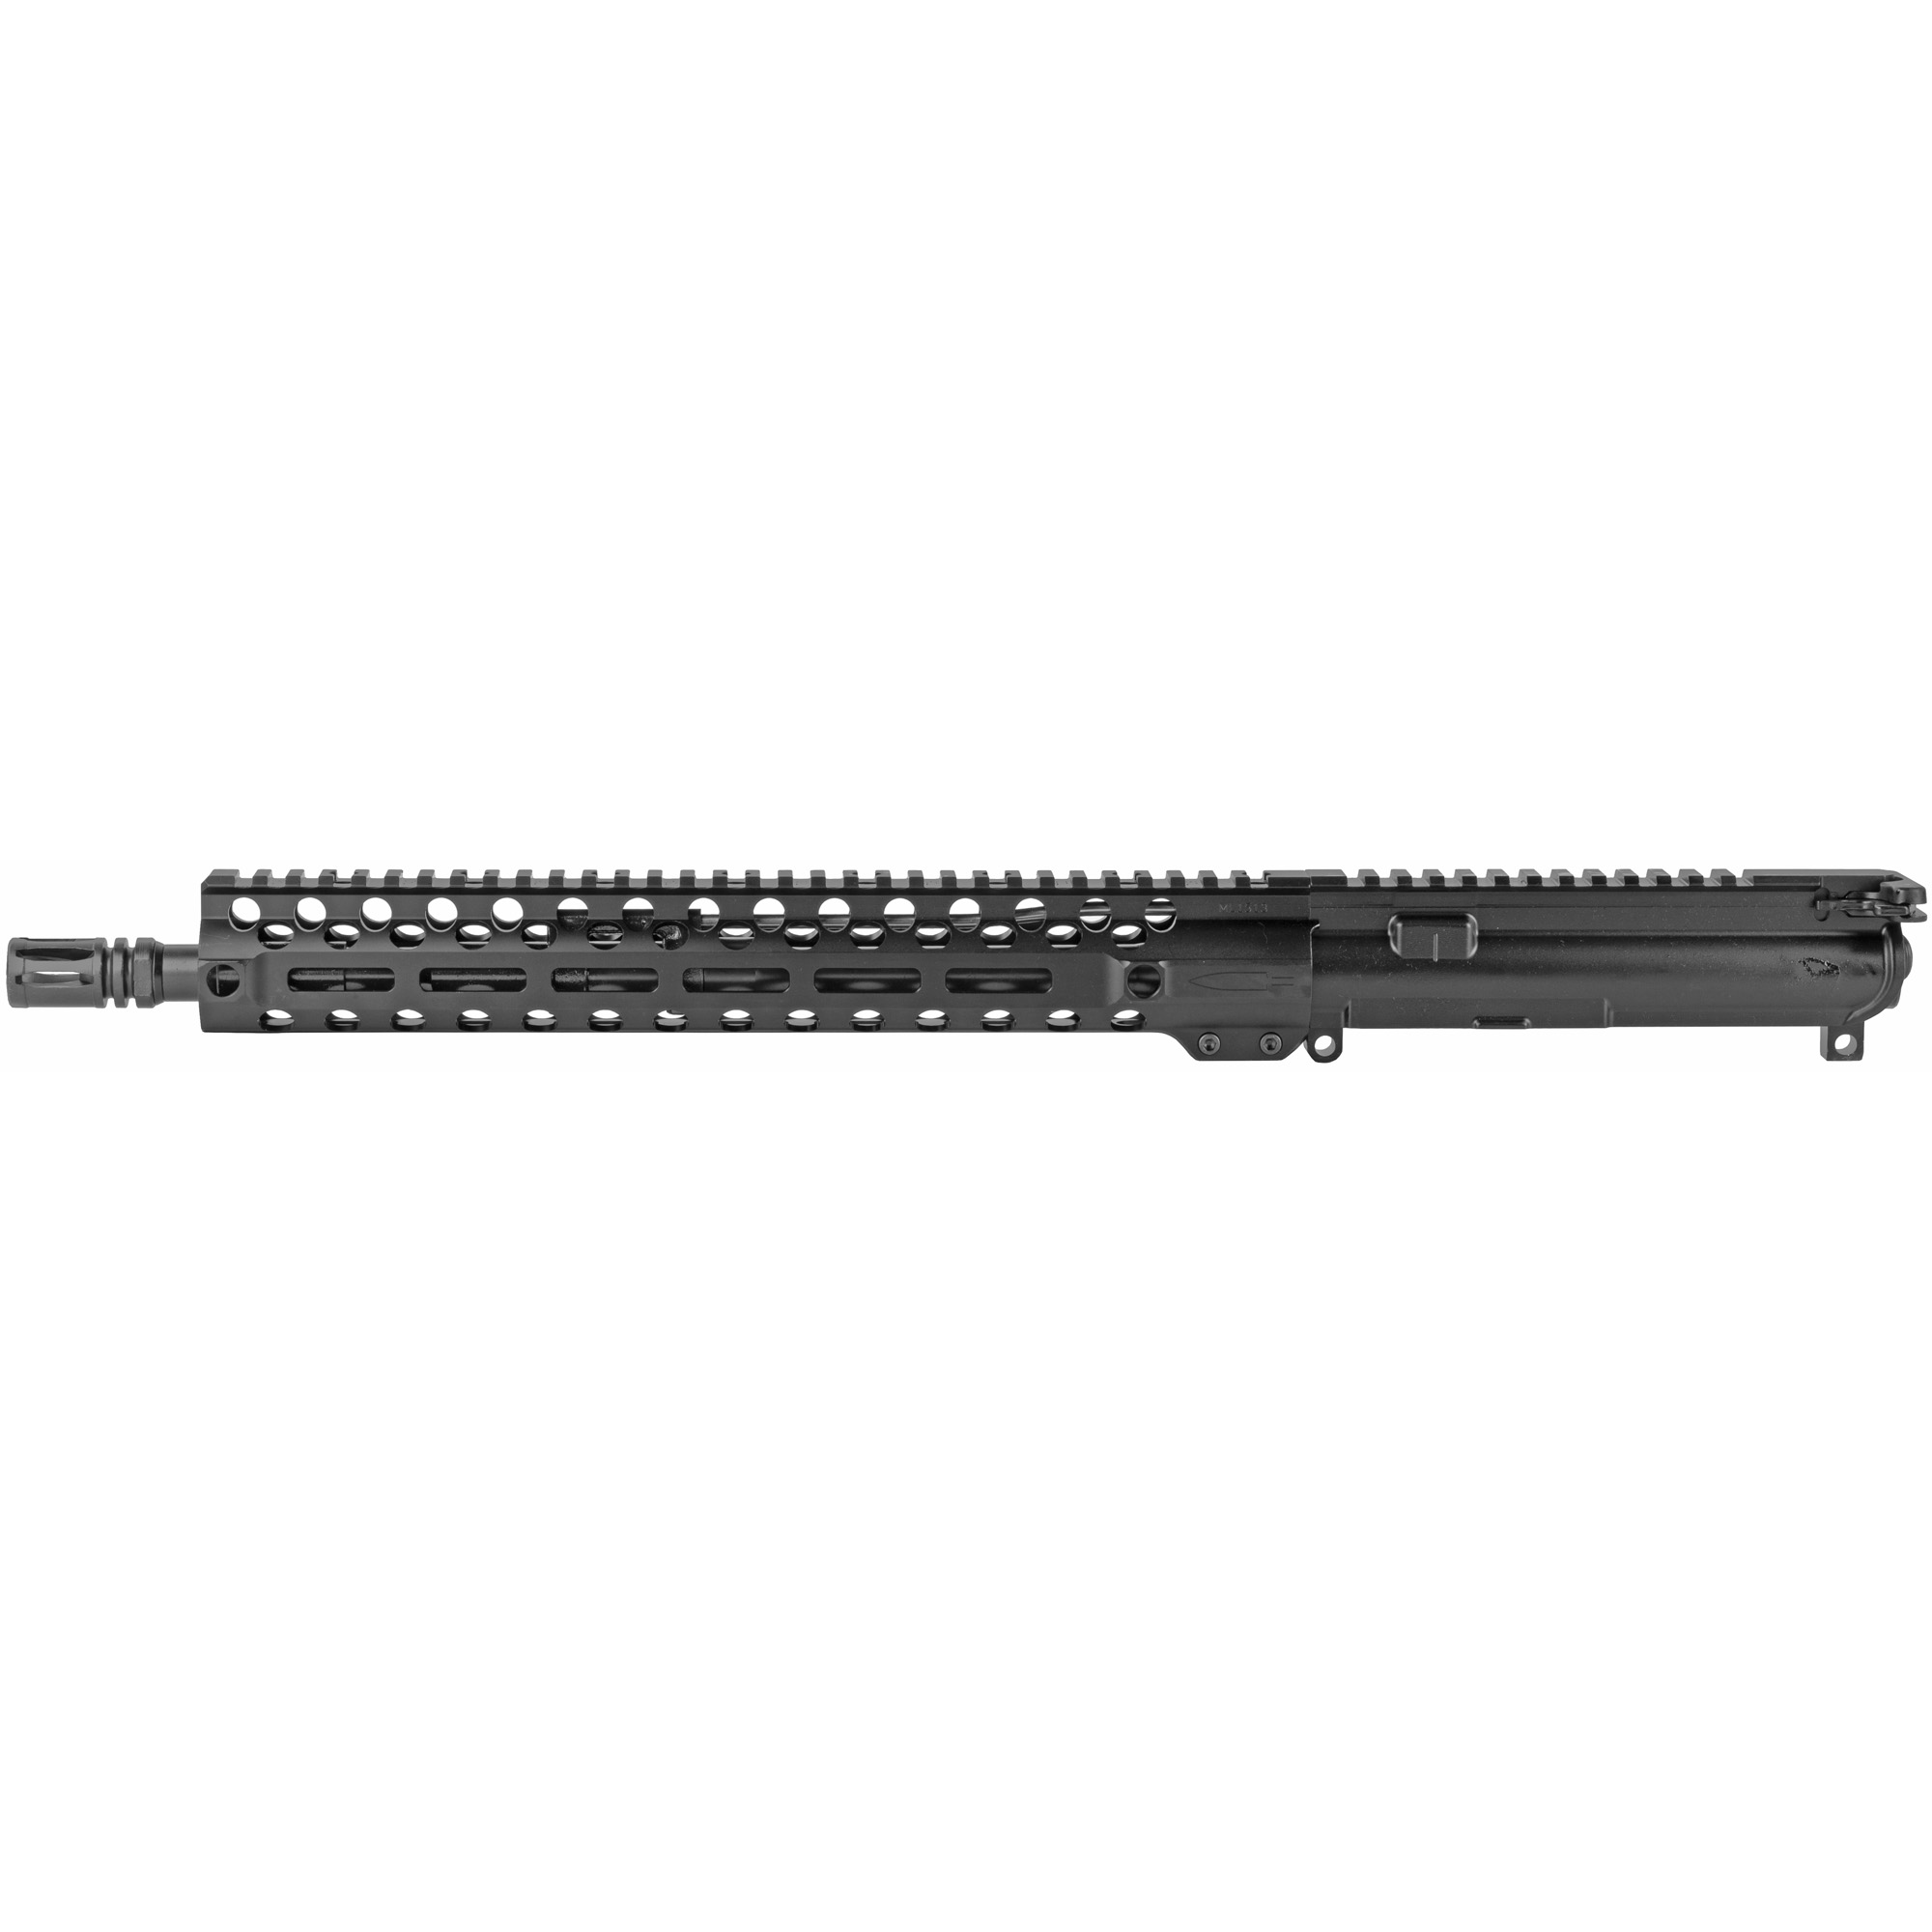 "Colt Epr Upper Kit 5.56 14.5"" Blk"